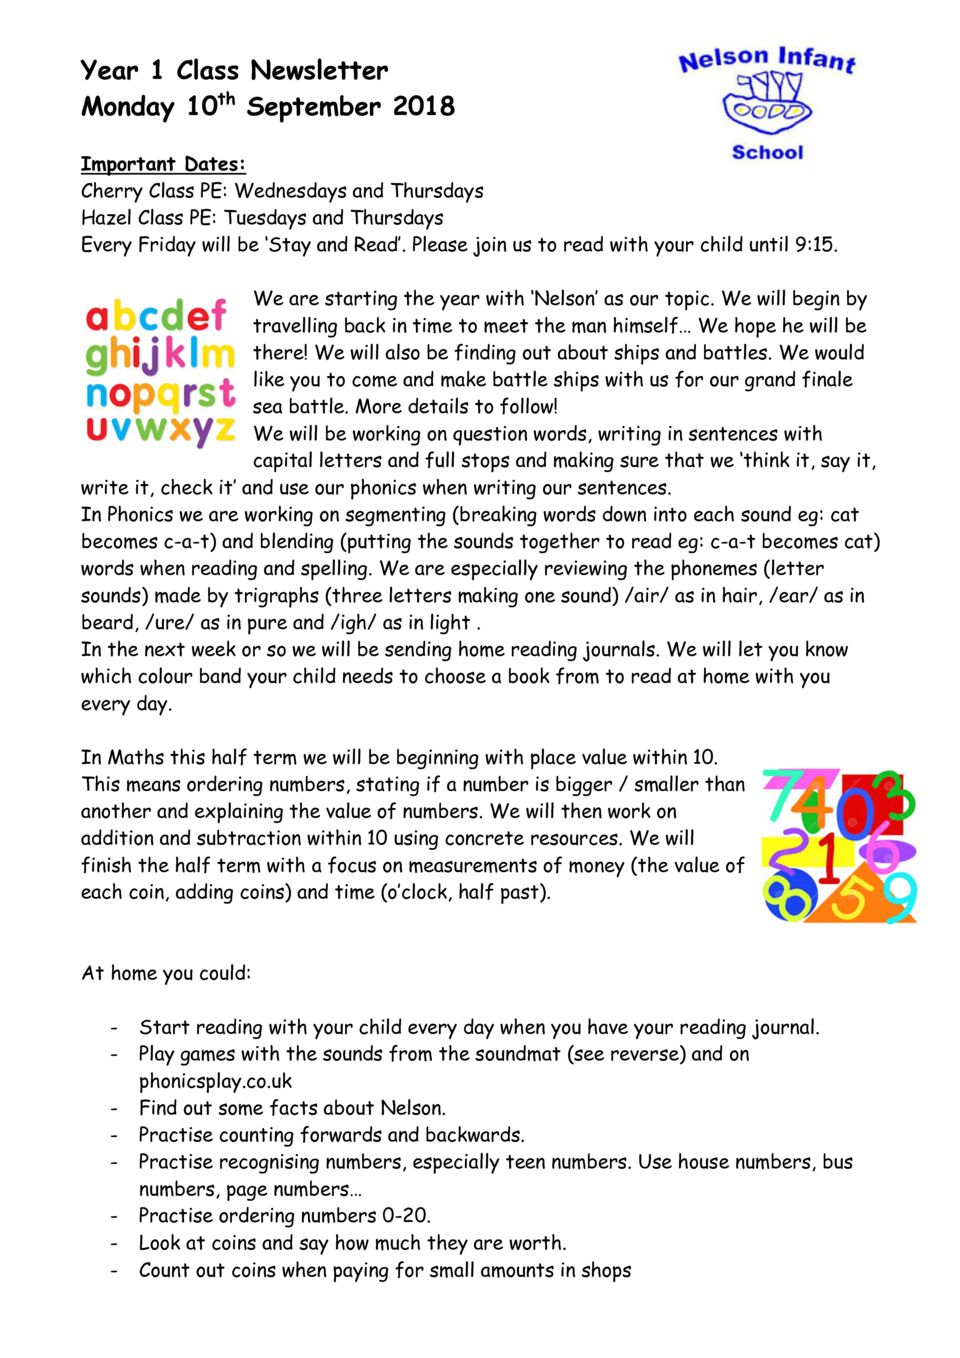 thumbnail of Year 1 Class Newsletter 10th September 2018